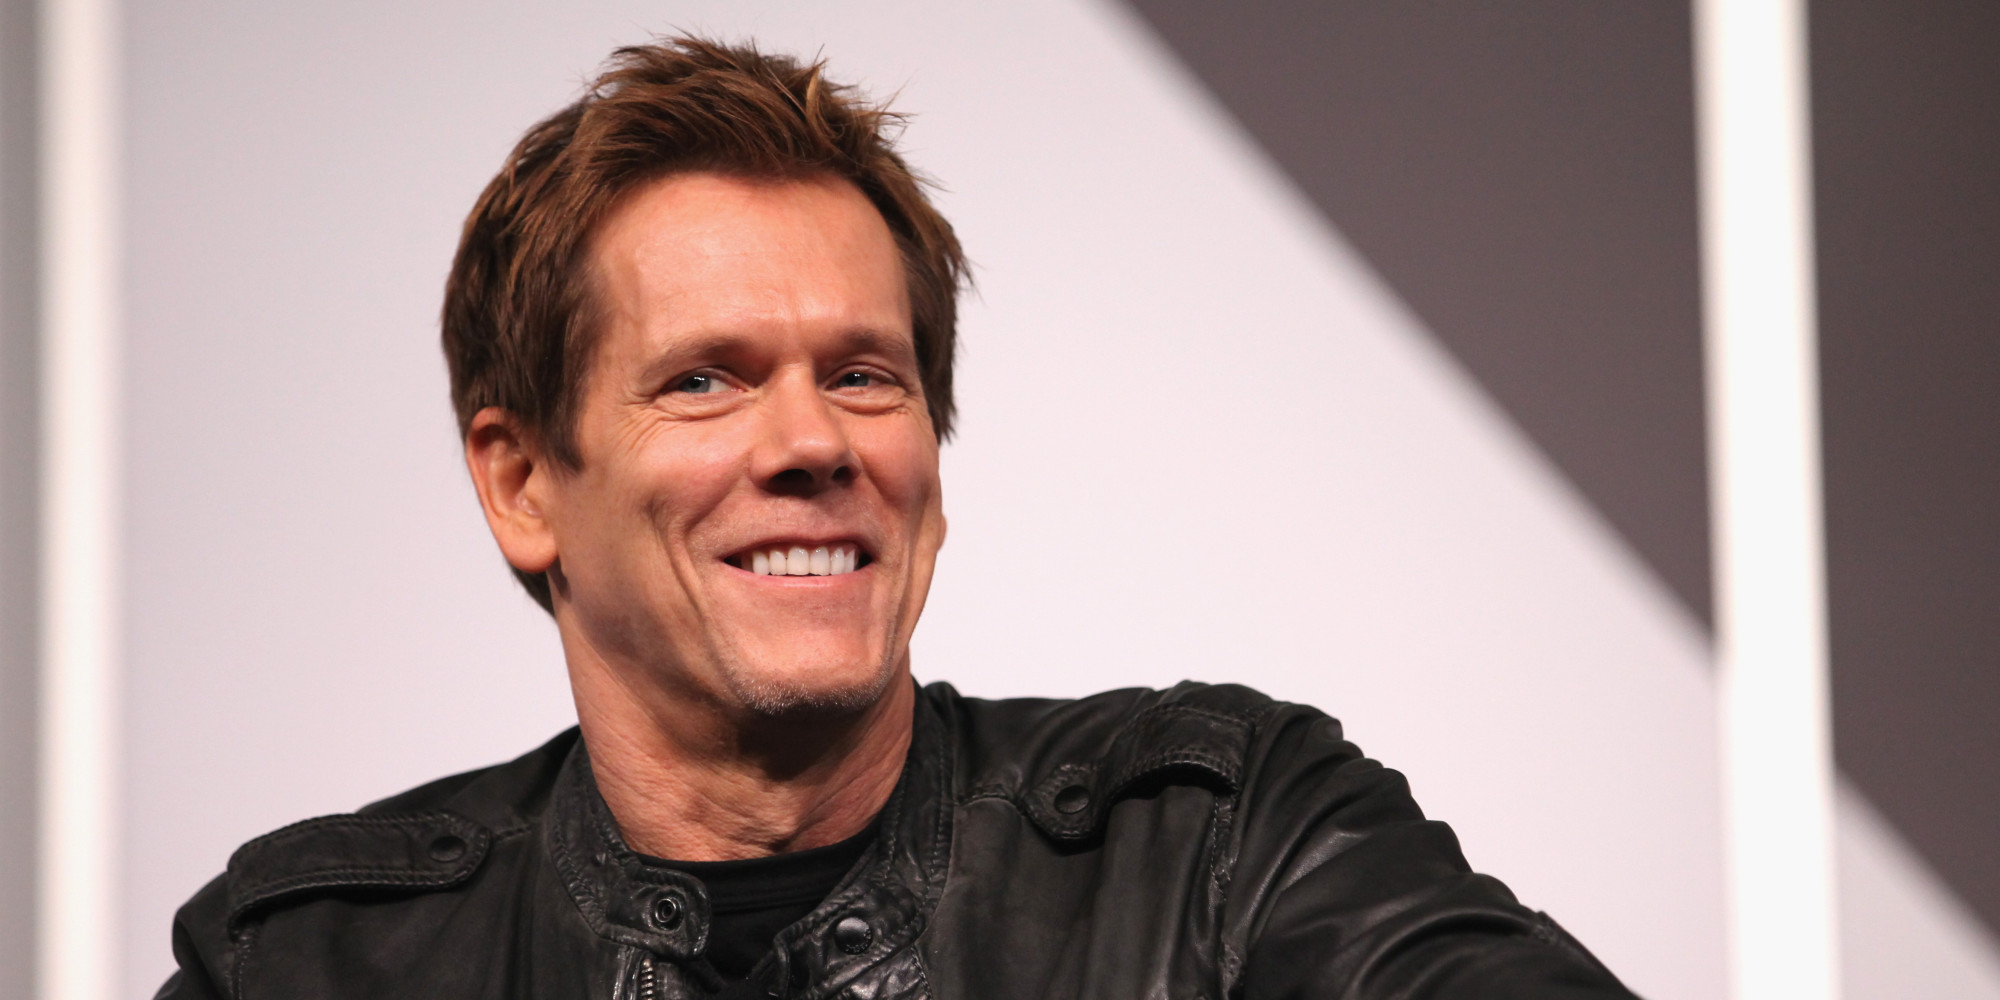 City On A Hill: Kevin Bacon to star in new crime drama